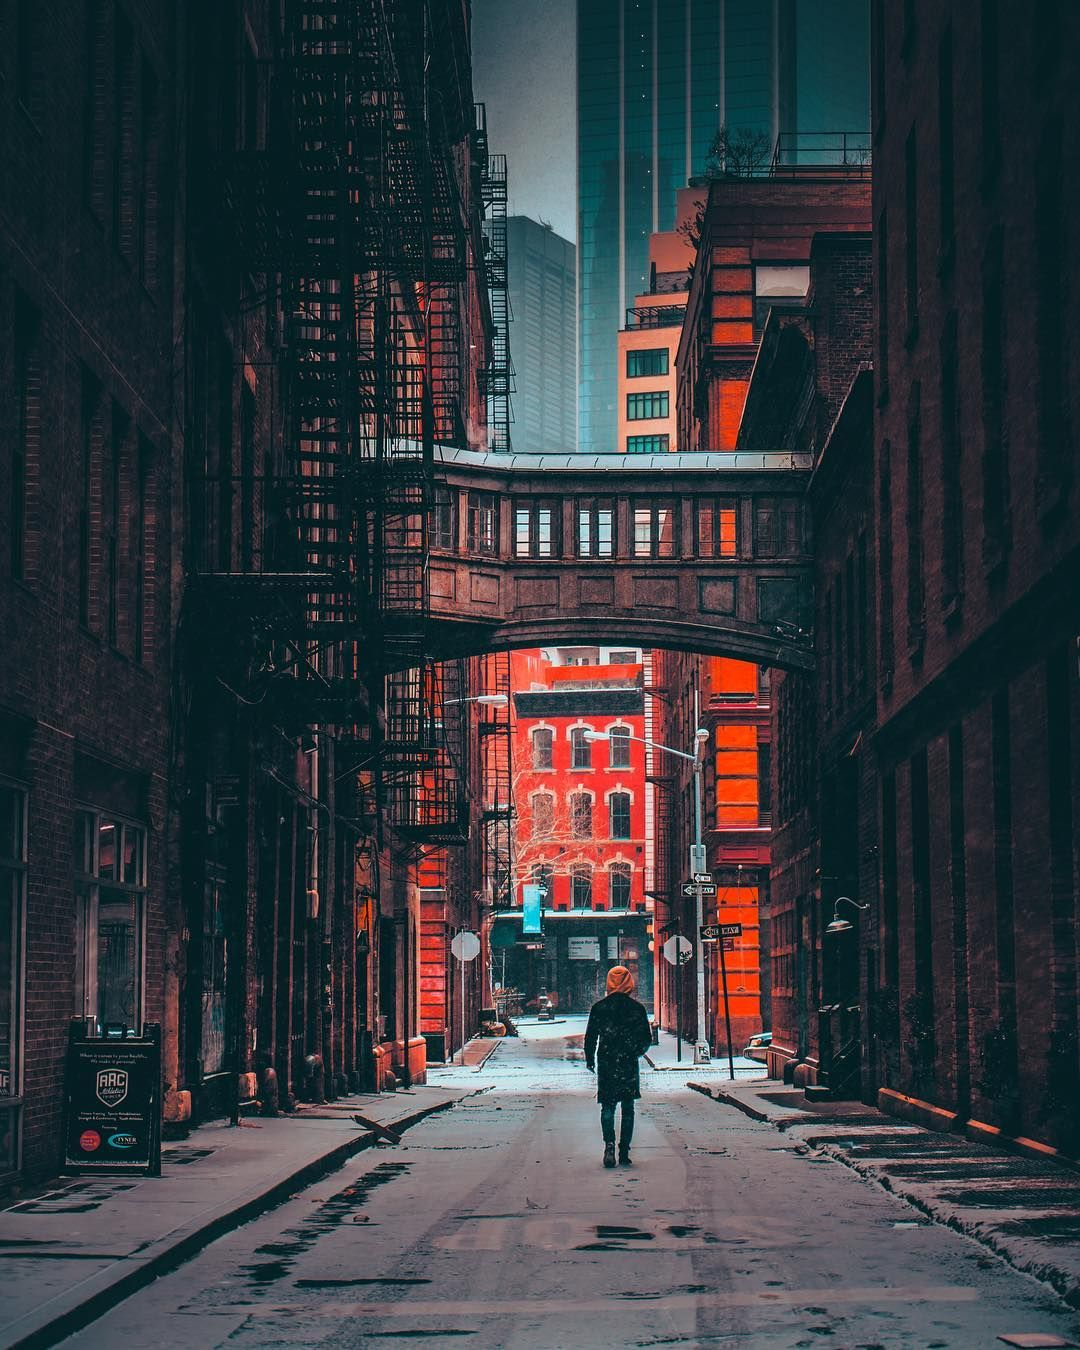 Stunning Moody Street Photos Of New York City By Mazz